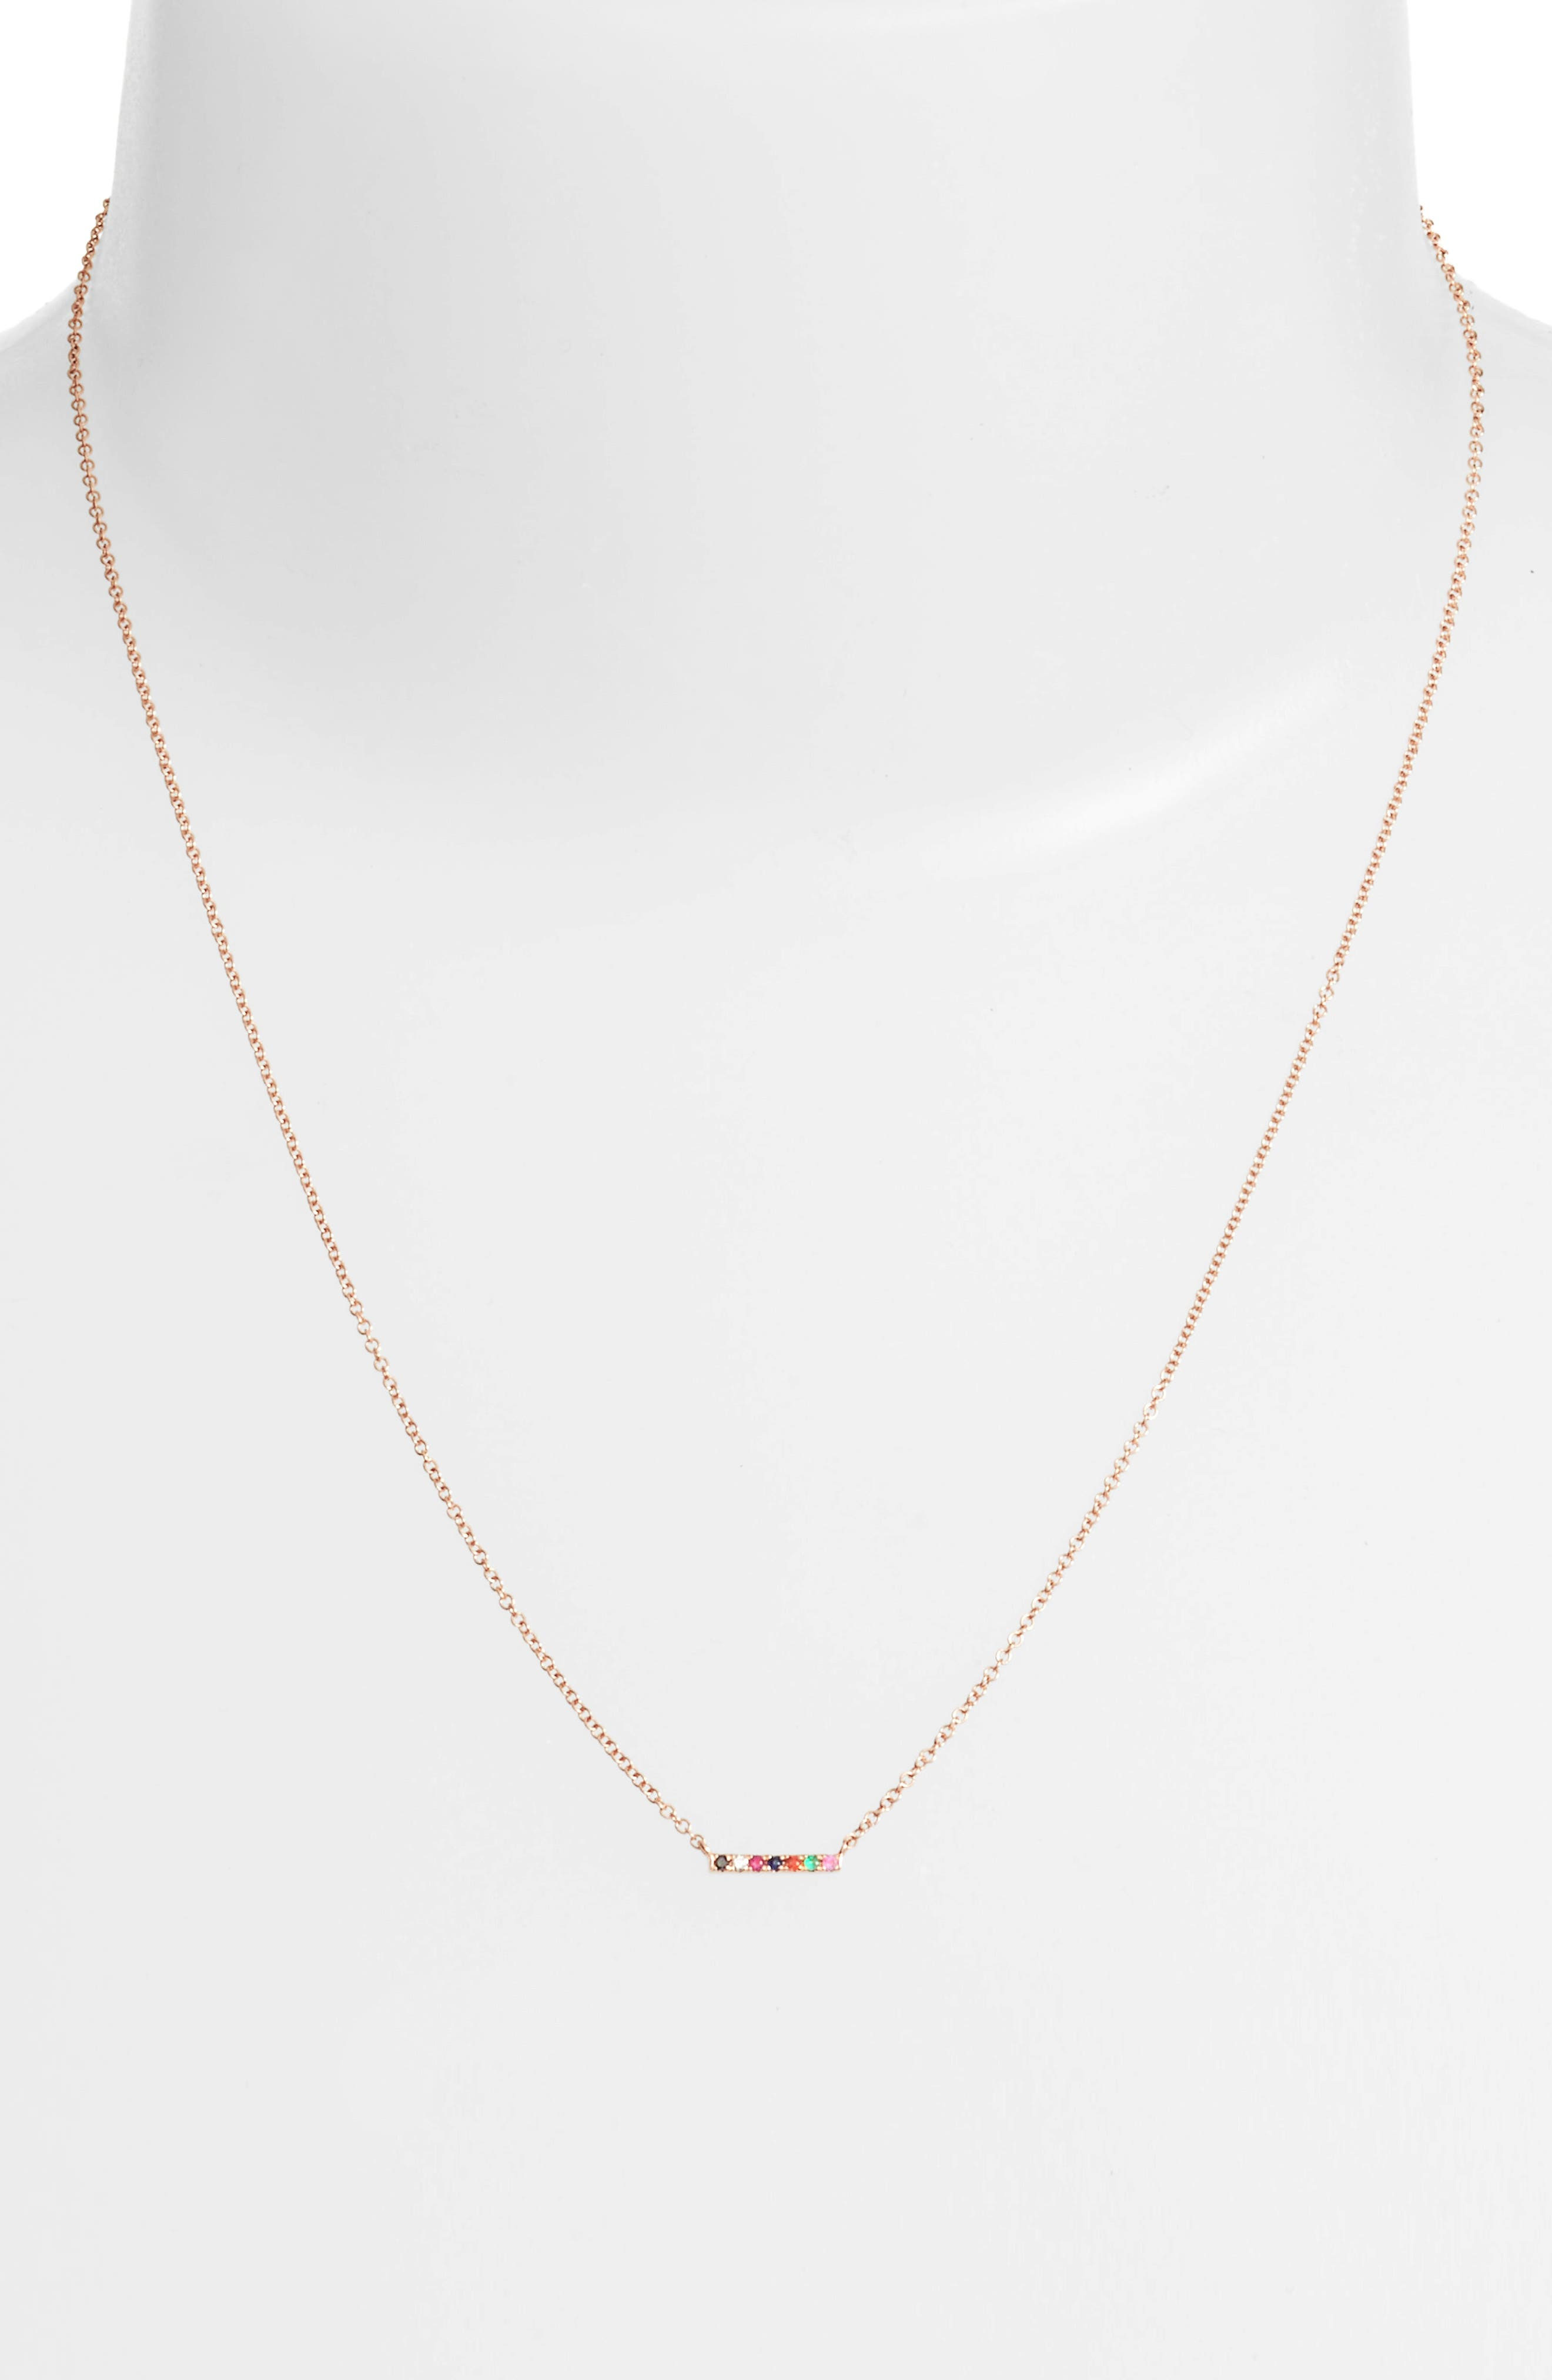 Mini Bar Rainbow Necklace,                             Alternate thumbnail 2, color,                             Rose Gold